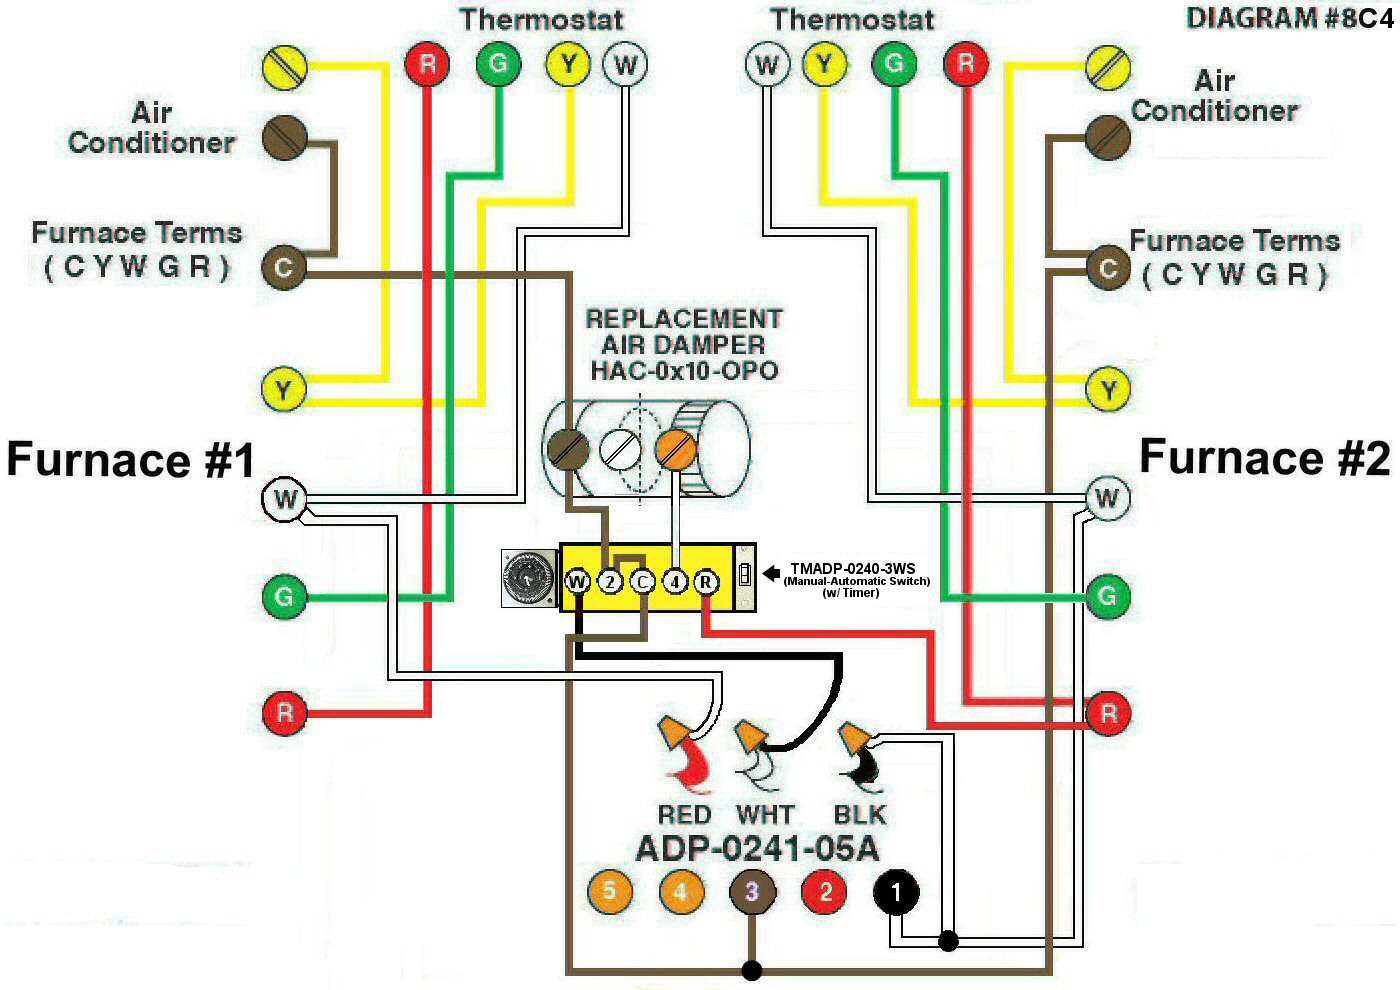 furnace fan wiring diagram land rover discovery 2 srs ge blower motor 3 wire condenser